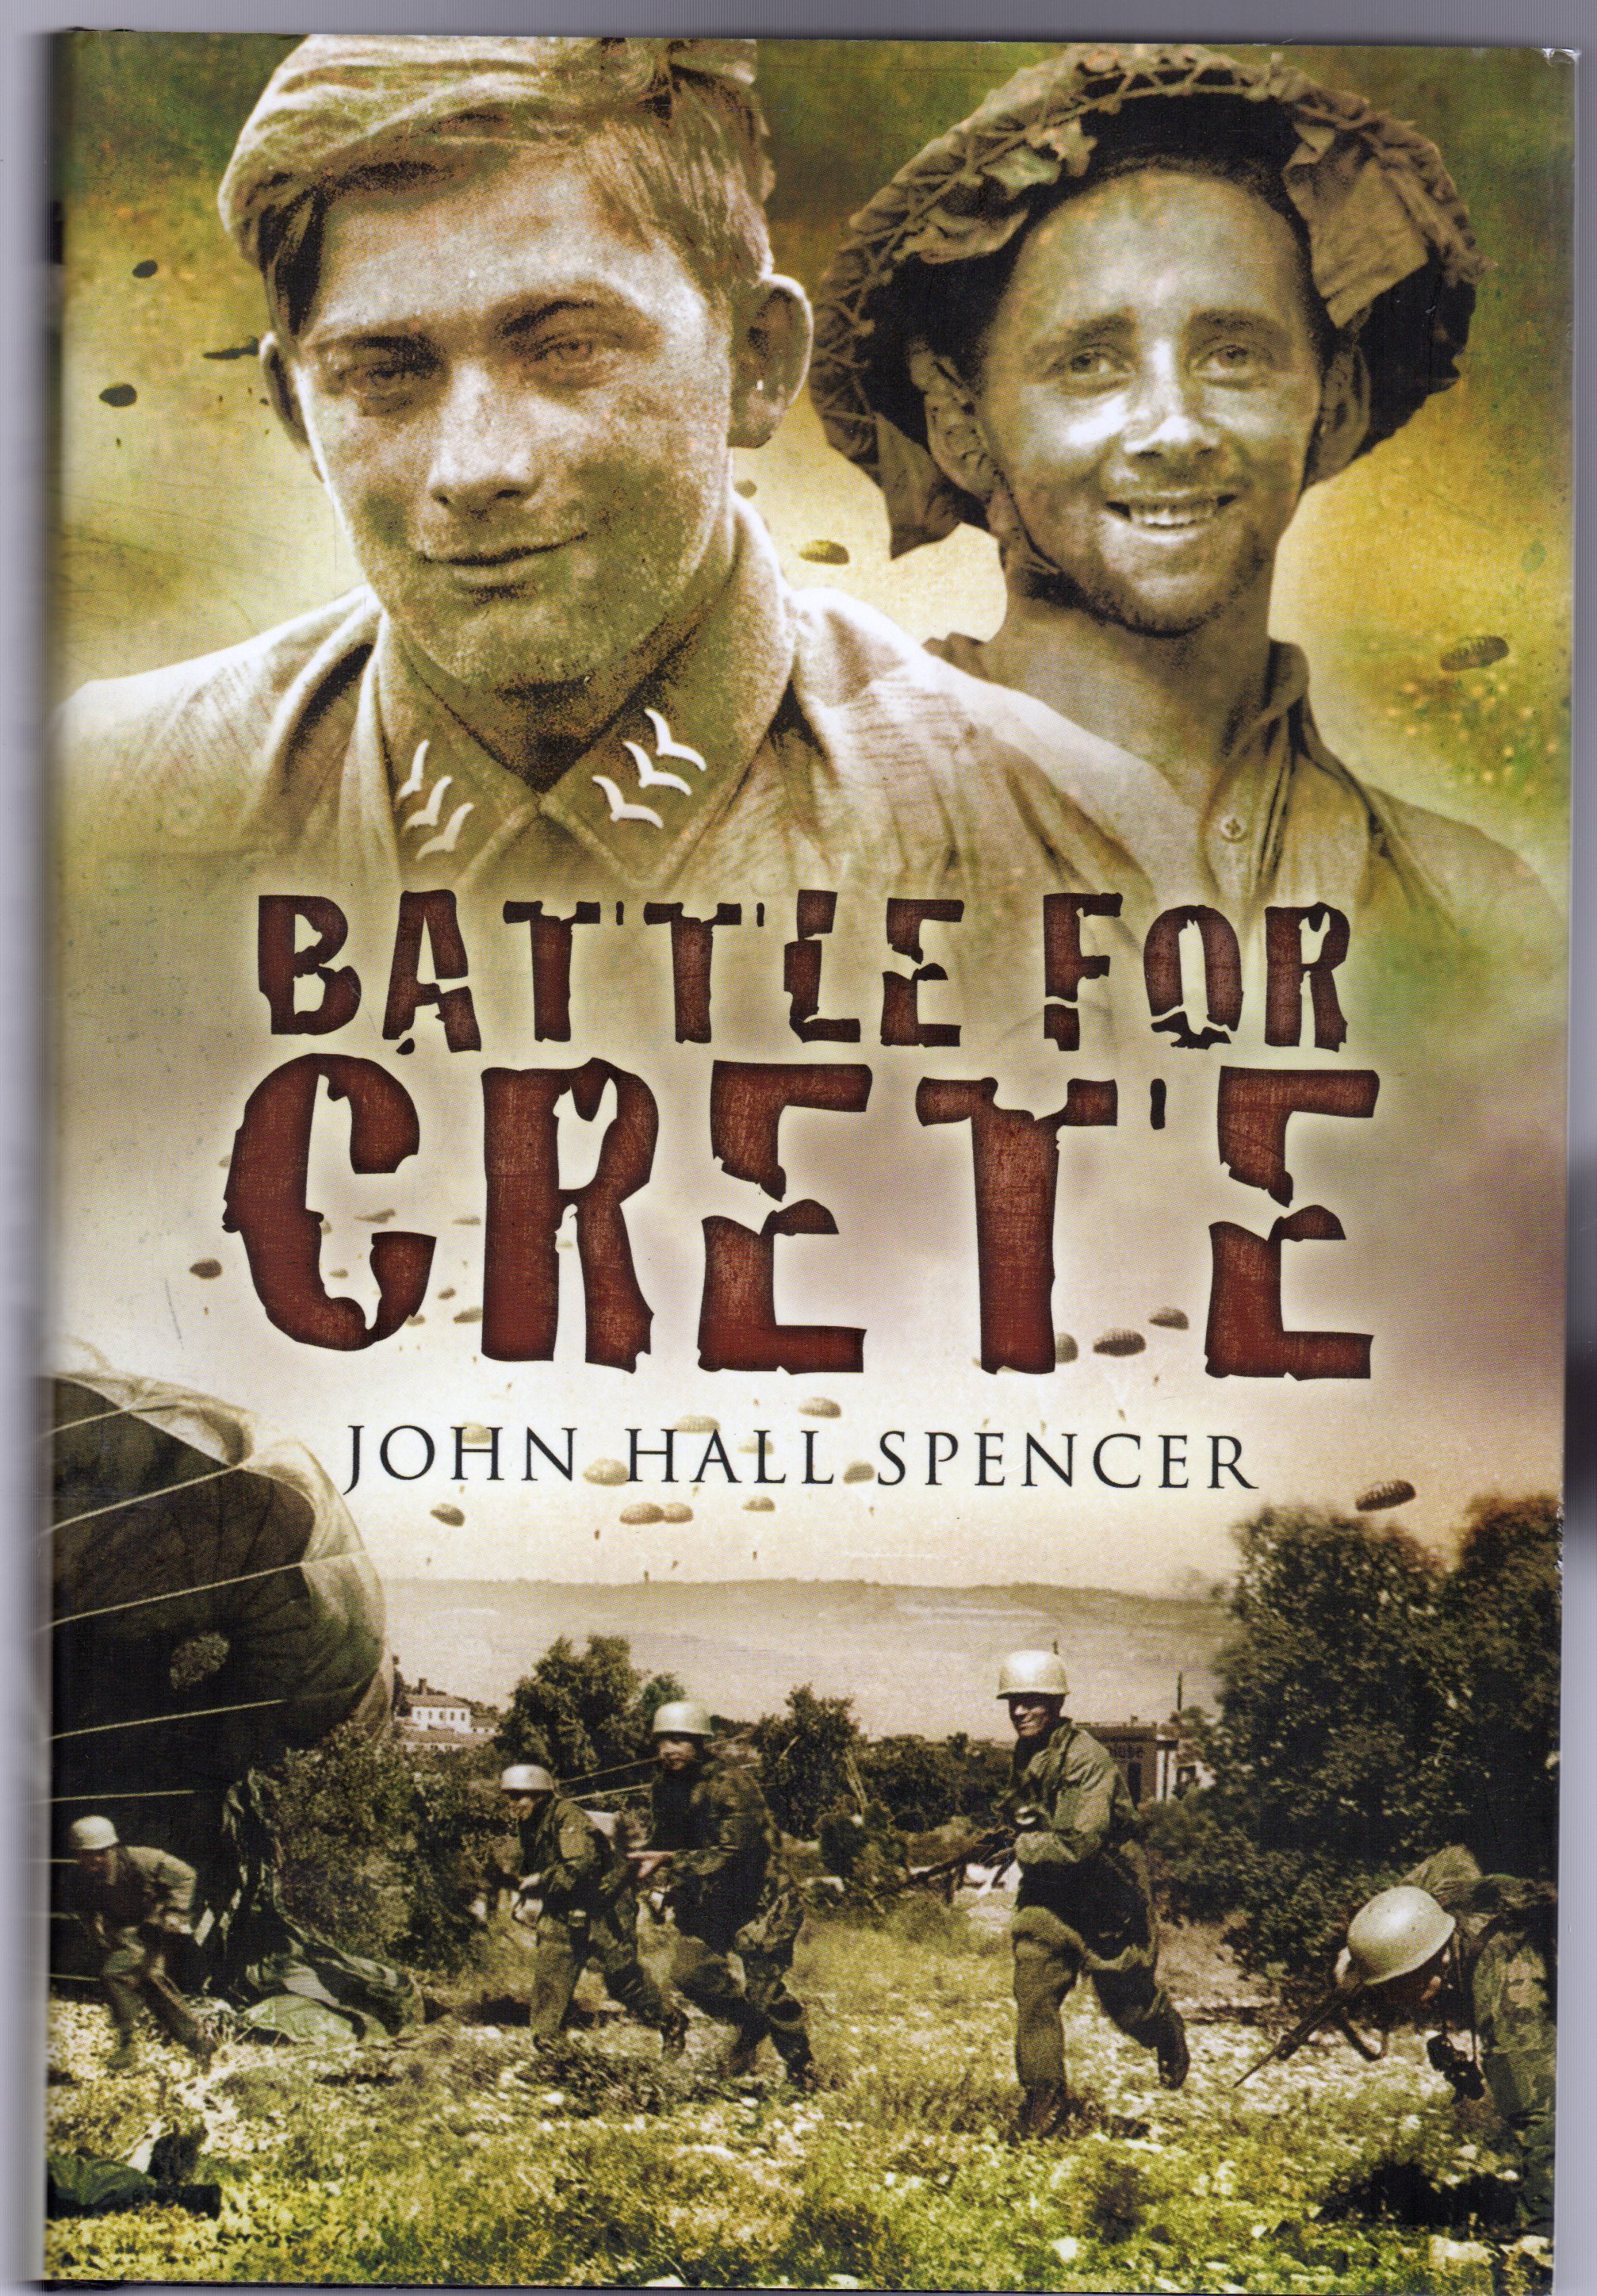 Image for Battle for Crete (SIGNED COPY)